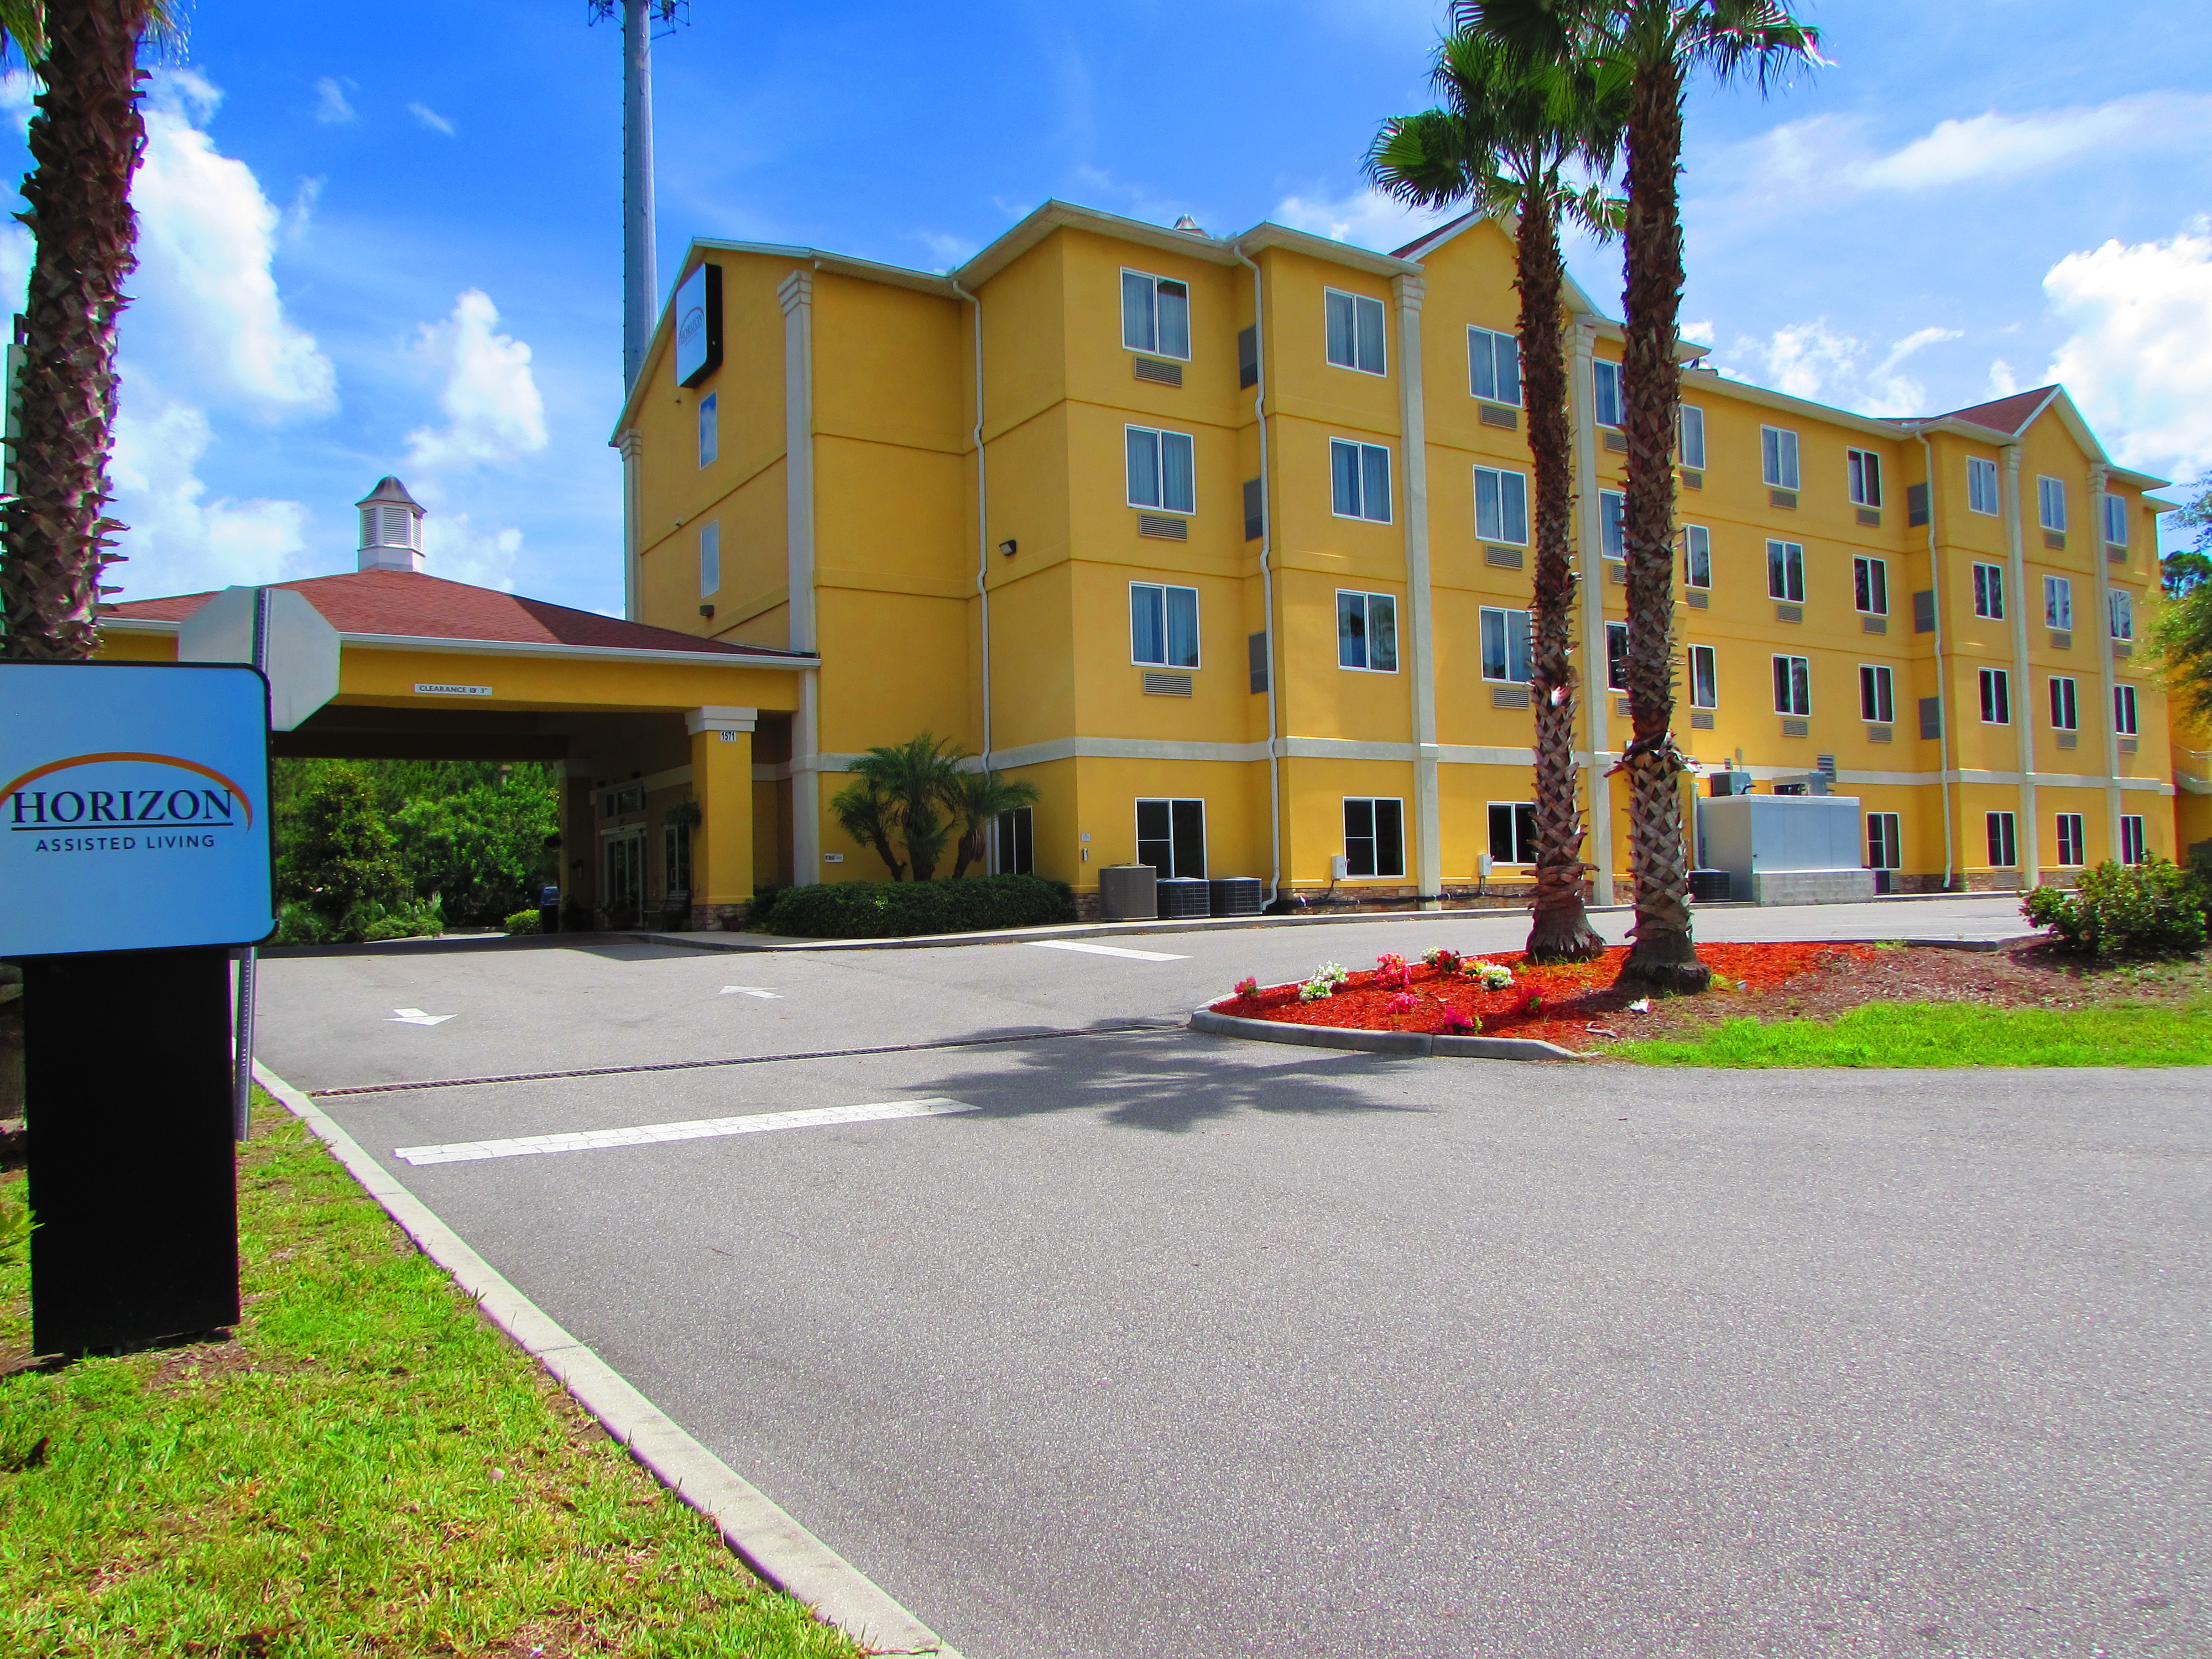 Horizon Assisted living at Ormond Beach, FL